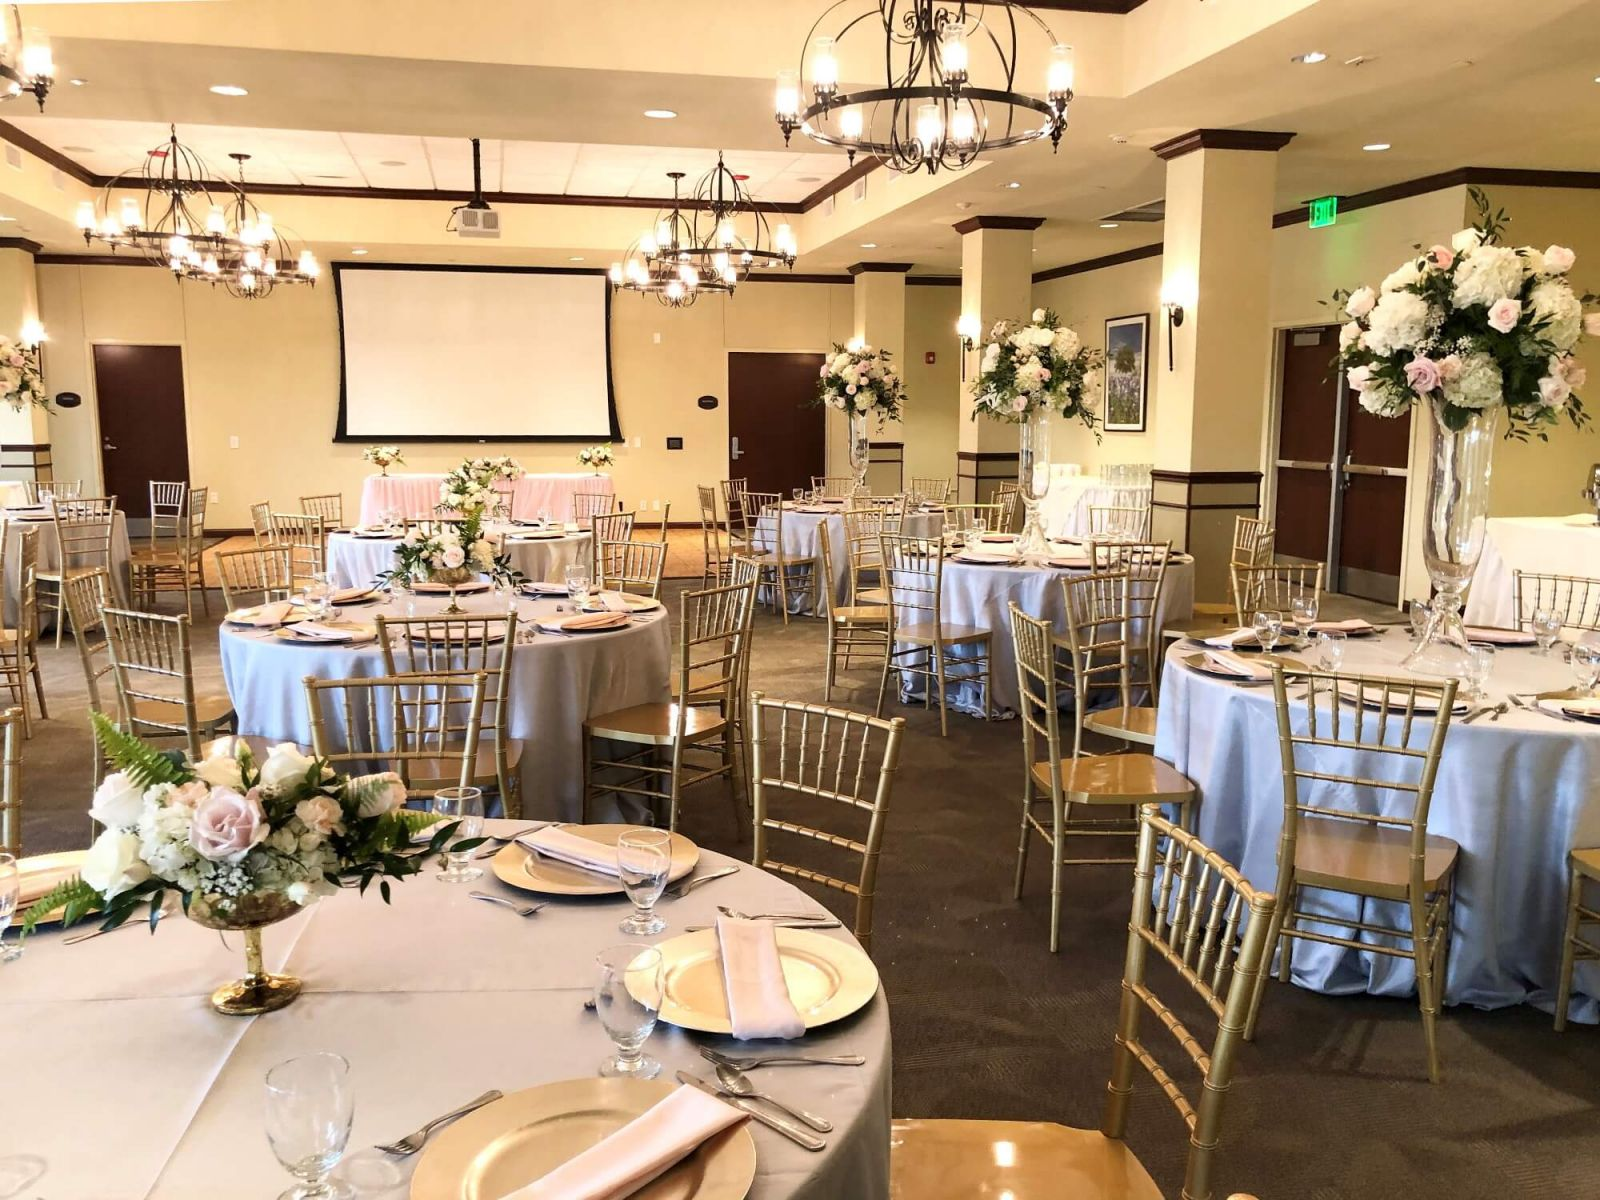 Company Event - Bluebonnet Room